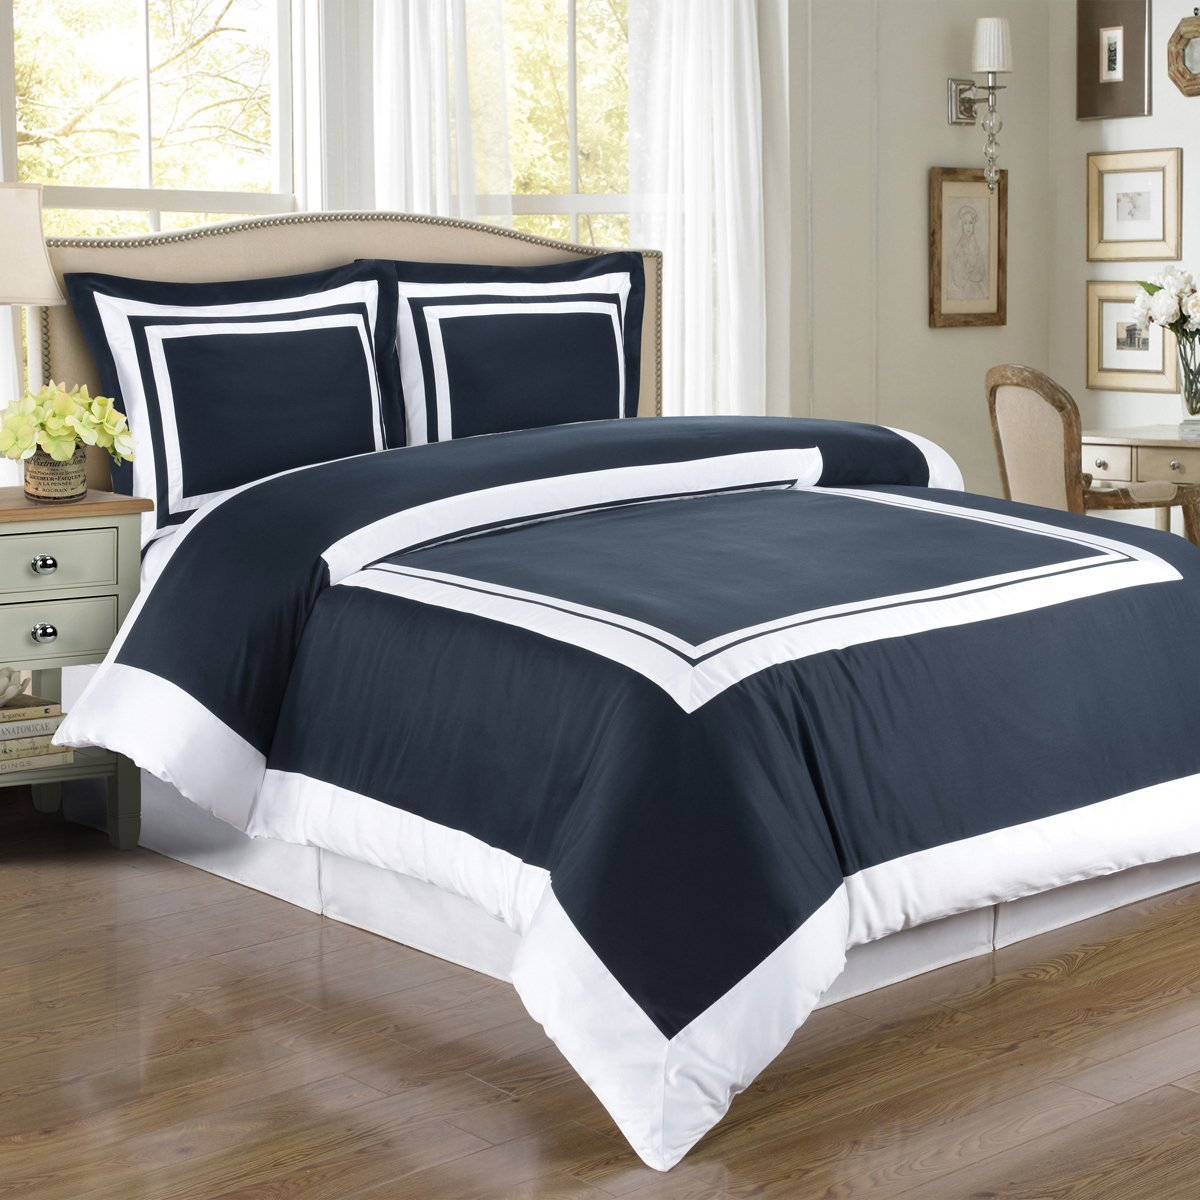 Navy and White Hotel 3pc Twin / Twin XL Comforter Set 100 % Cotton 300 Thread Count by Royal Hotel